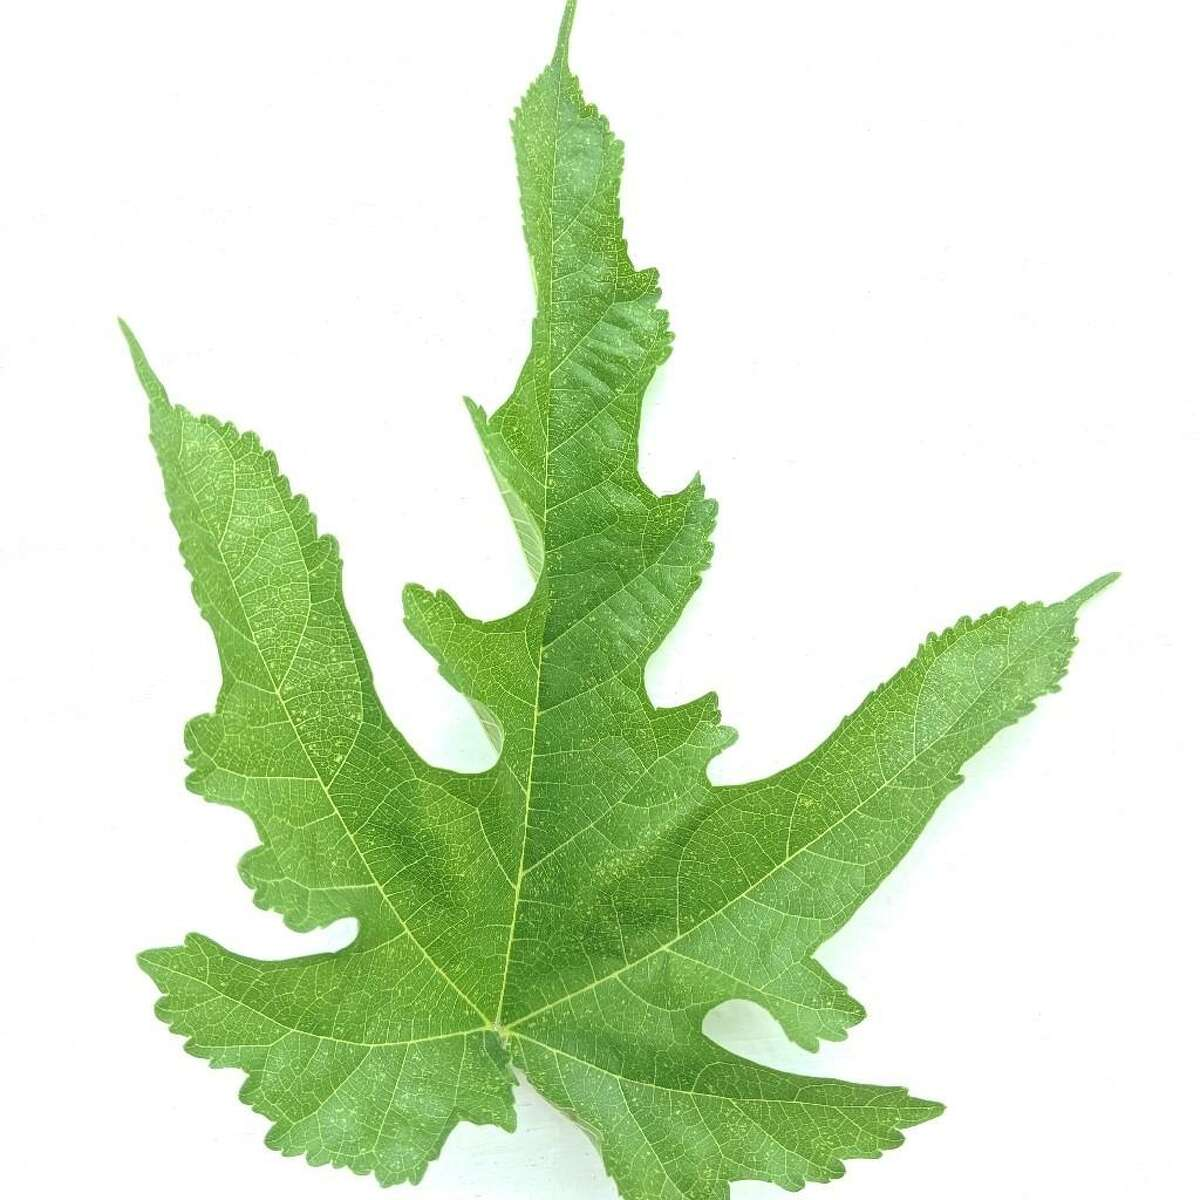 A photo of the leaf that Houston Chronicle writer Maggie Gordon submitted to a slew of gardening apps to determine which plant was growing in her garden. While the apps couldn't definitively determine its identity, it was later revealed to be a White Mulberry.